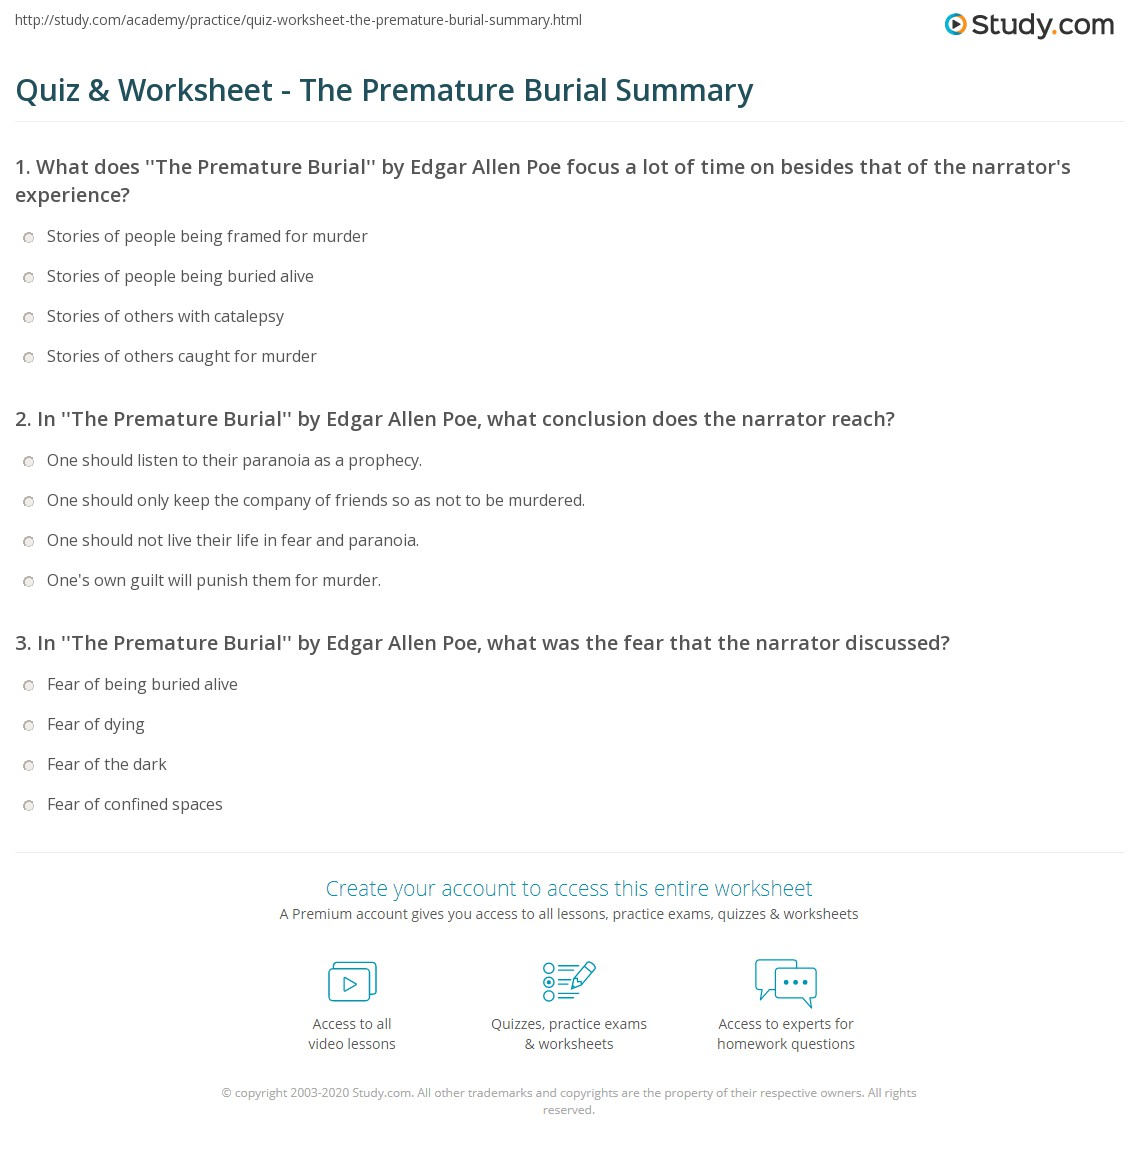 the premature burial summary